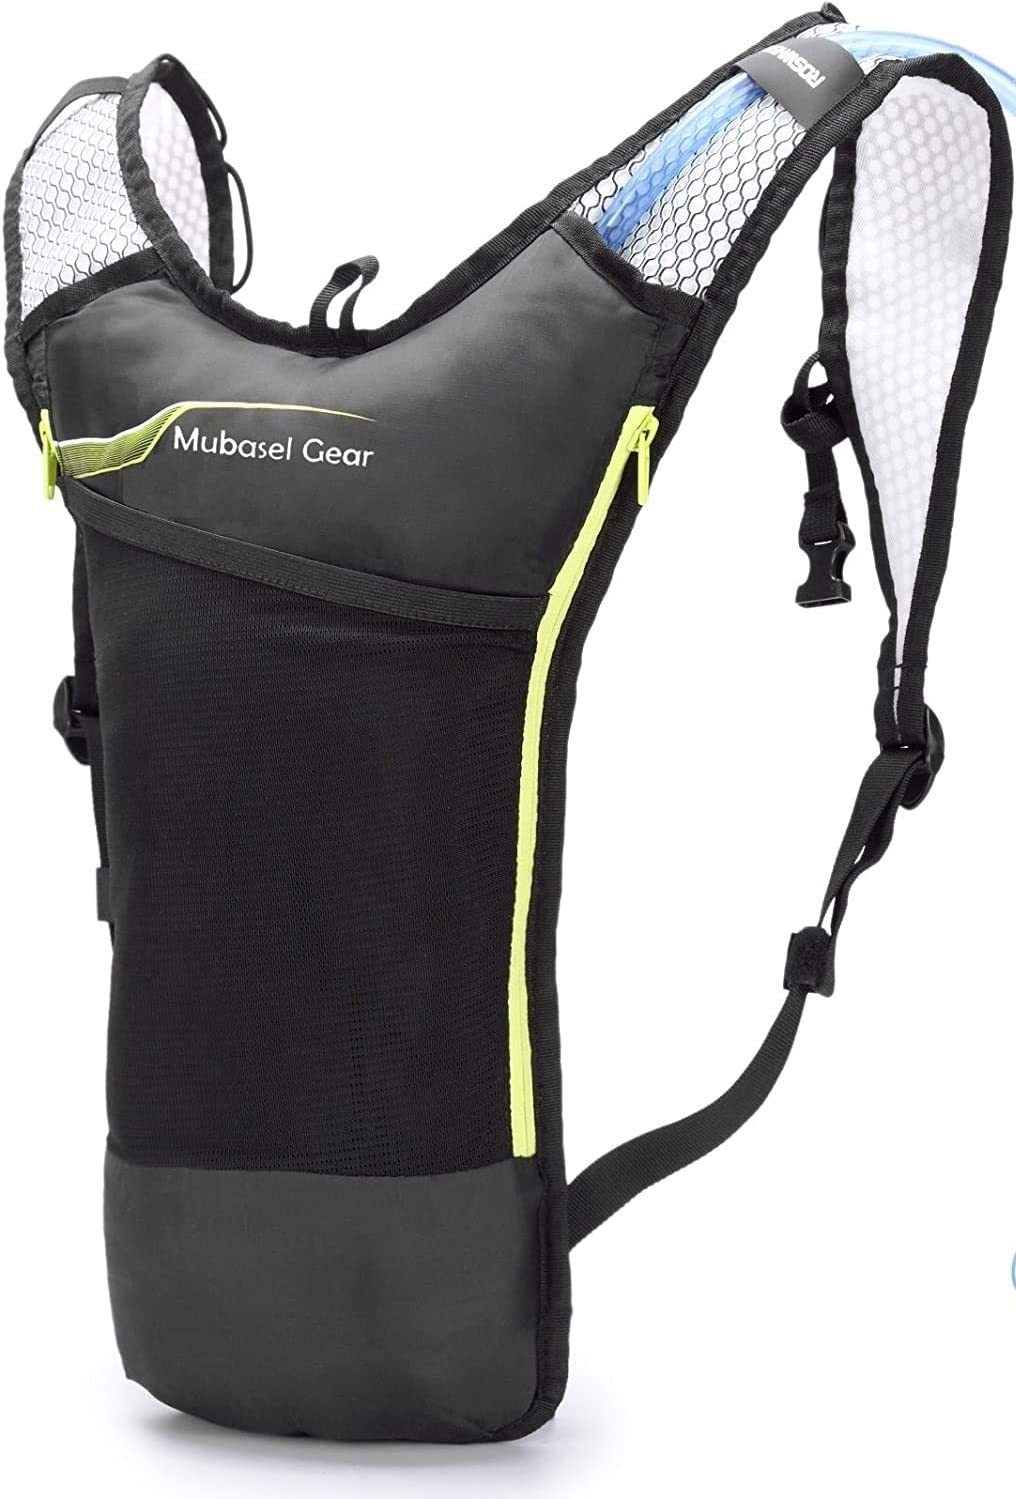 Mubasel Gear Backpack with 2L Bladder